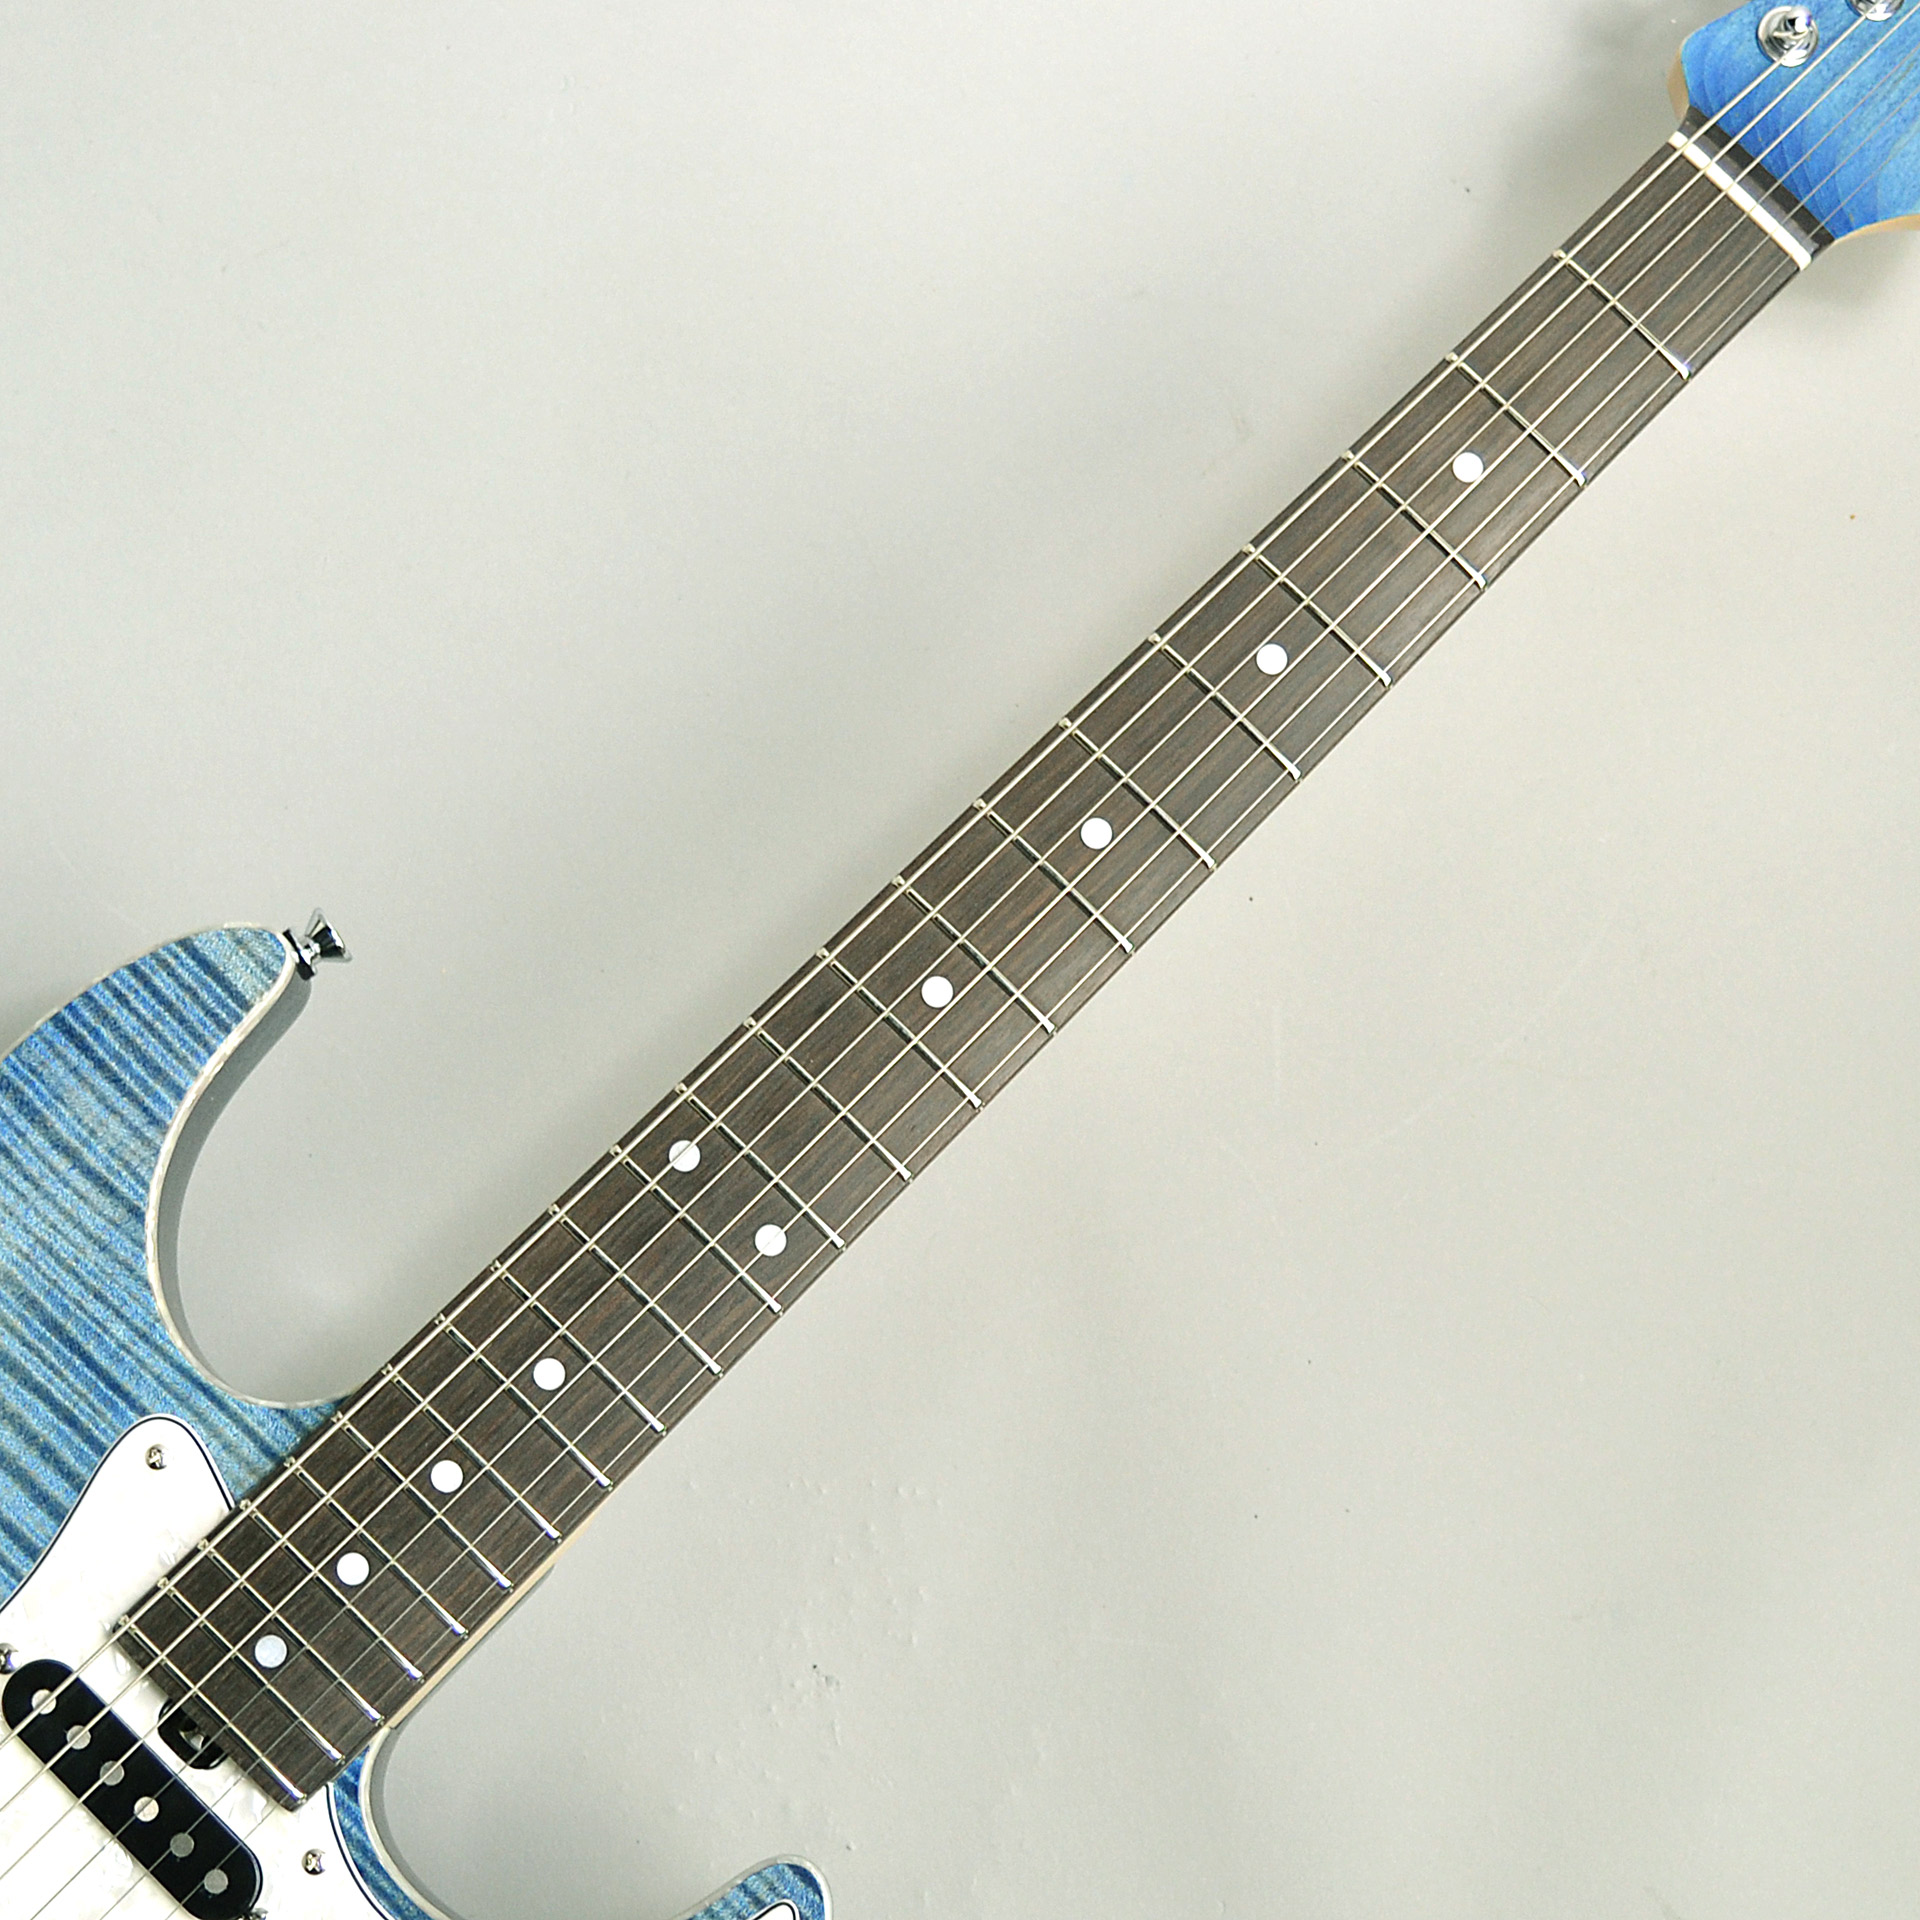 G-STUDIO-FM CUSTOM BlueOilの指板画像